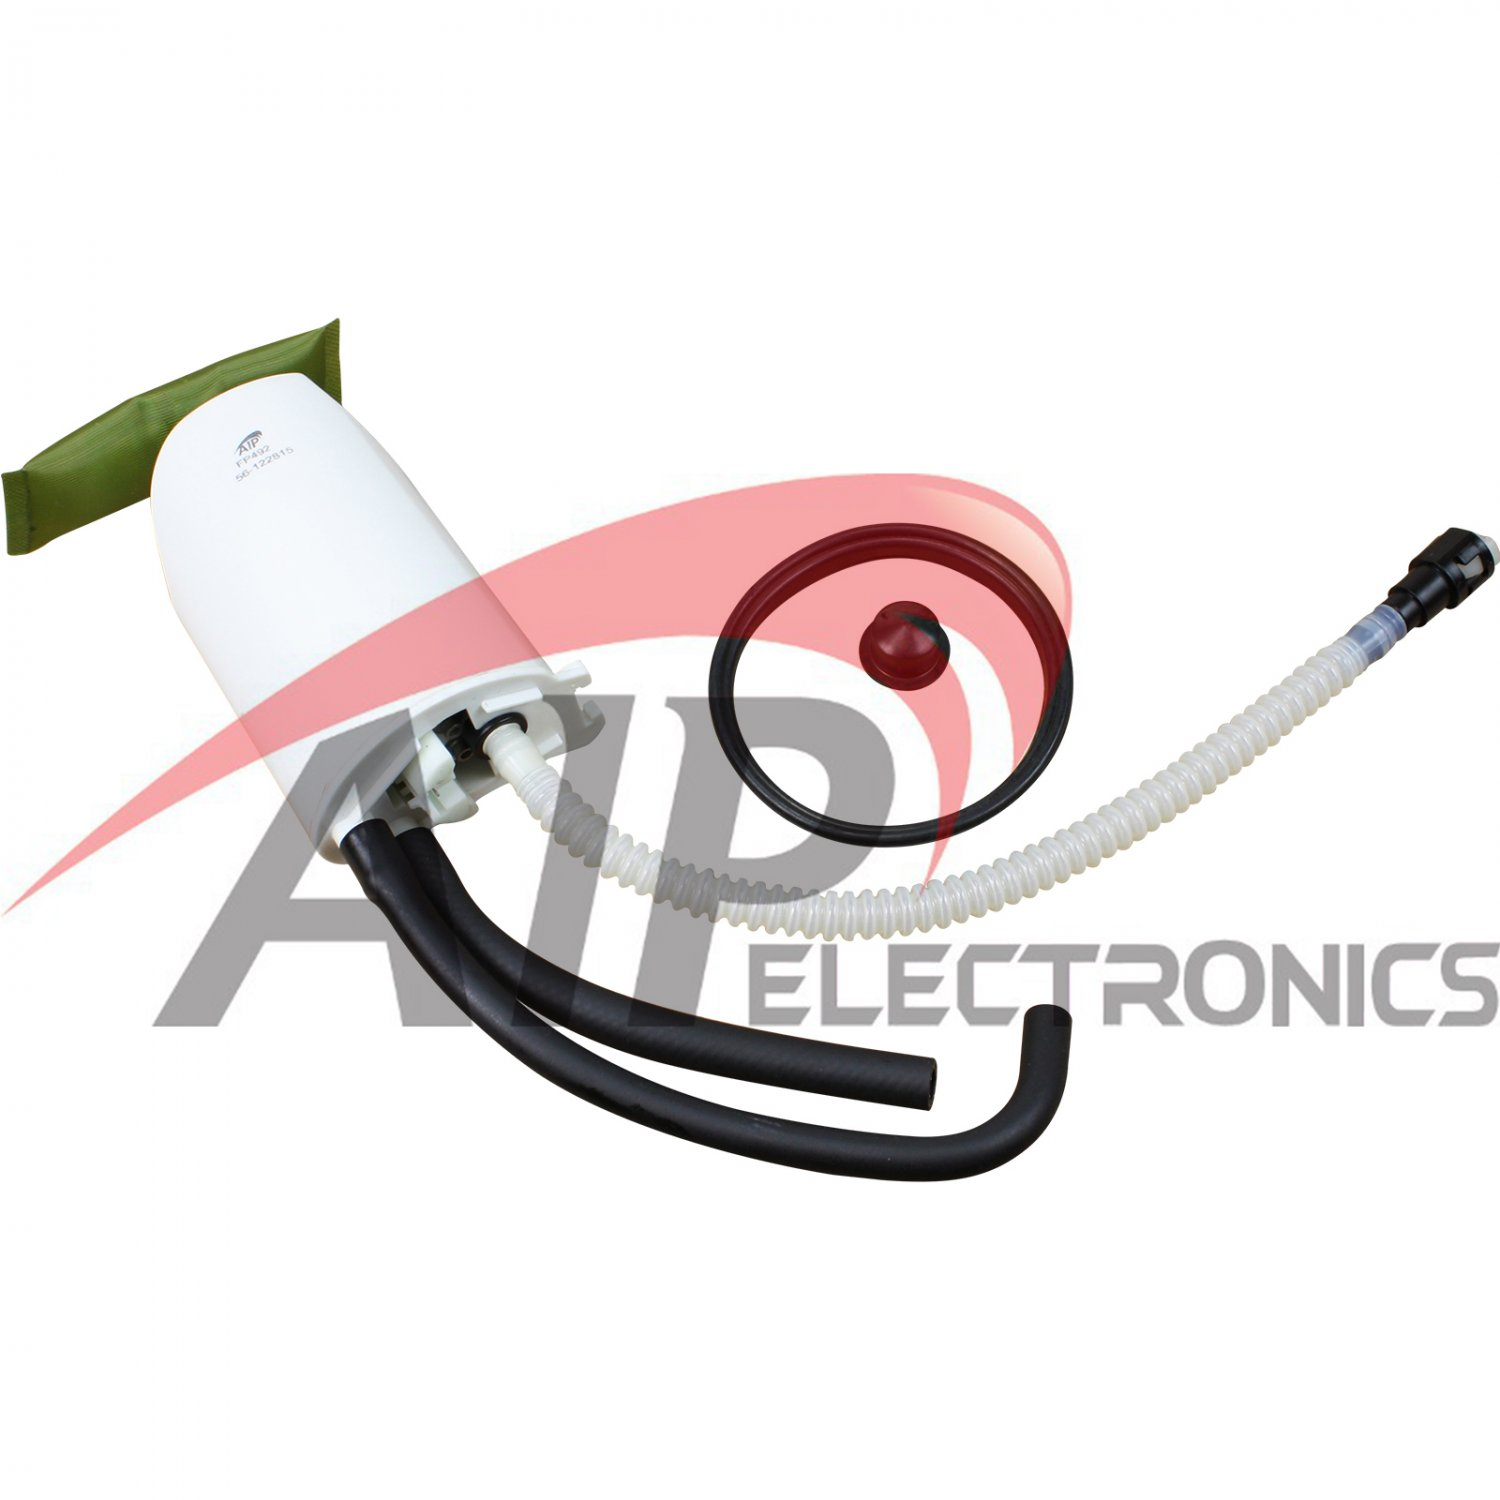 Brand New Fuel Pump Module Assembly for 1993-1995 Camaro and Firebird 5.7L LT1 V8 E3908 Oem Fit FP49